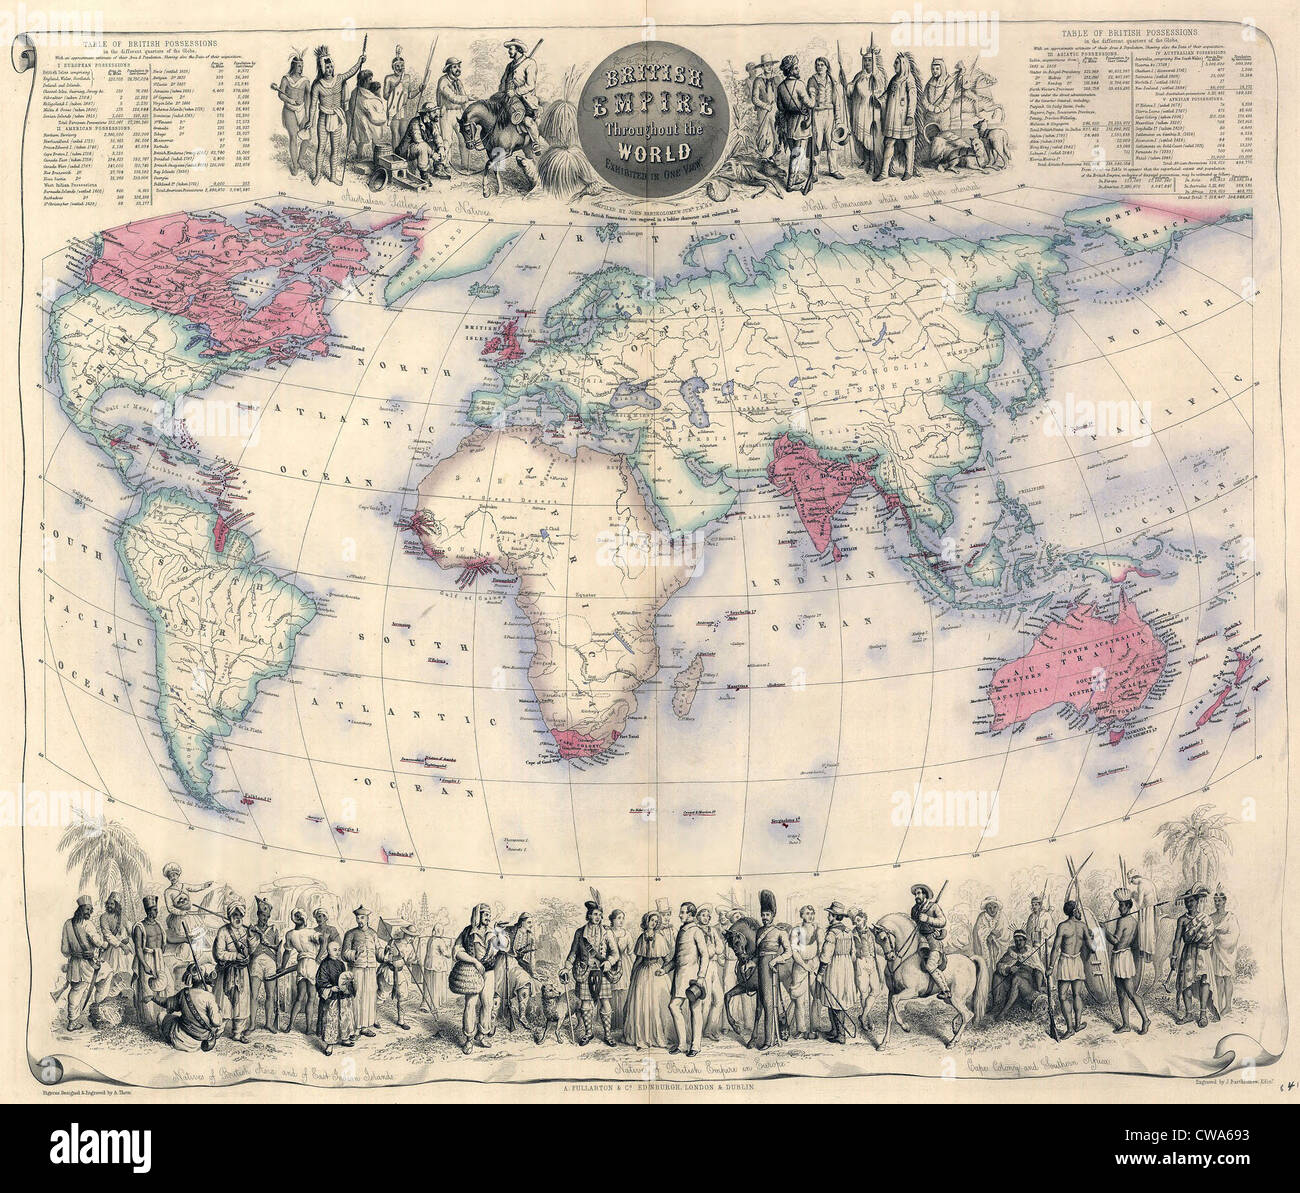 1850, la carte de l'Empire britannique dans le monde entier, avec des illustrations de l'habitant de l'Empire. Photo Stock